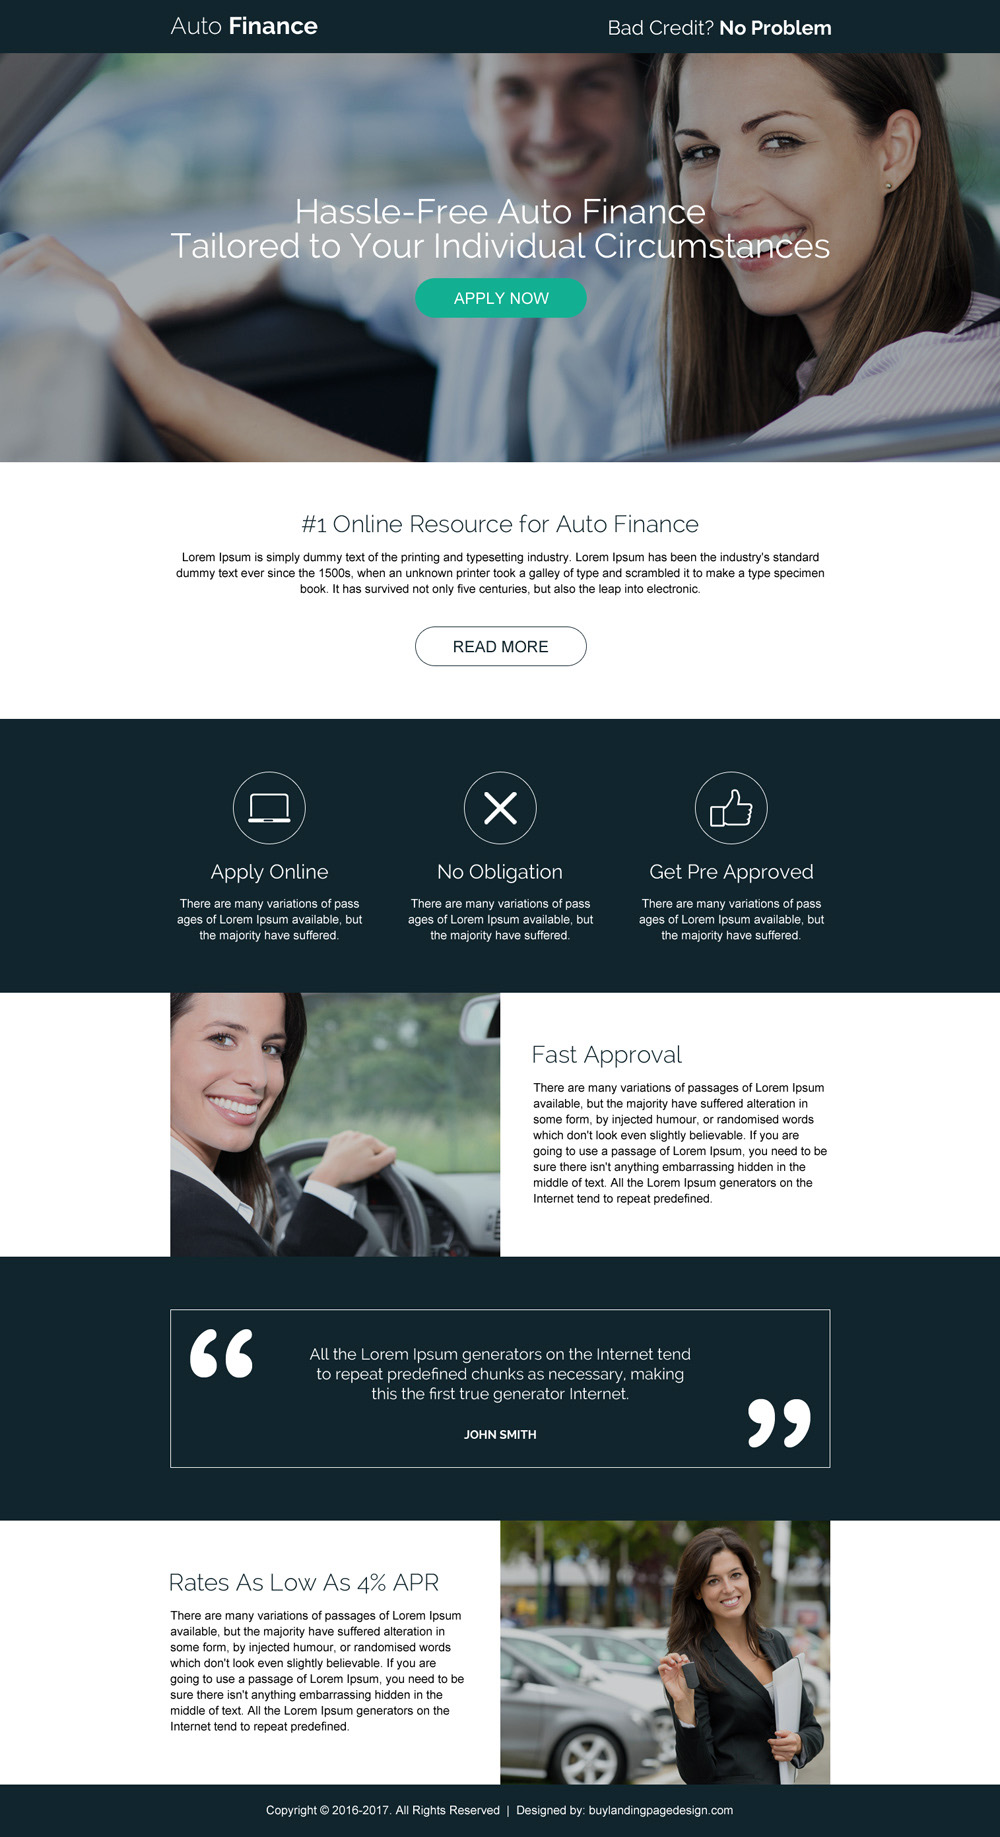 hassle-free-online-auto-finance-call-to-action-landing-page-design-005